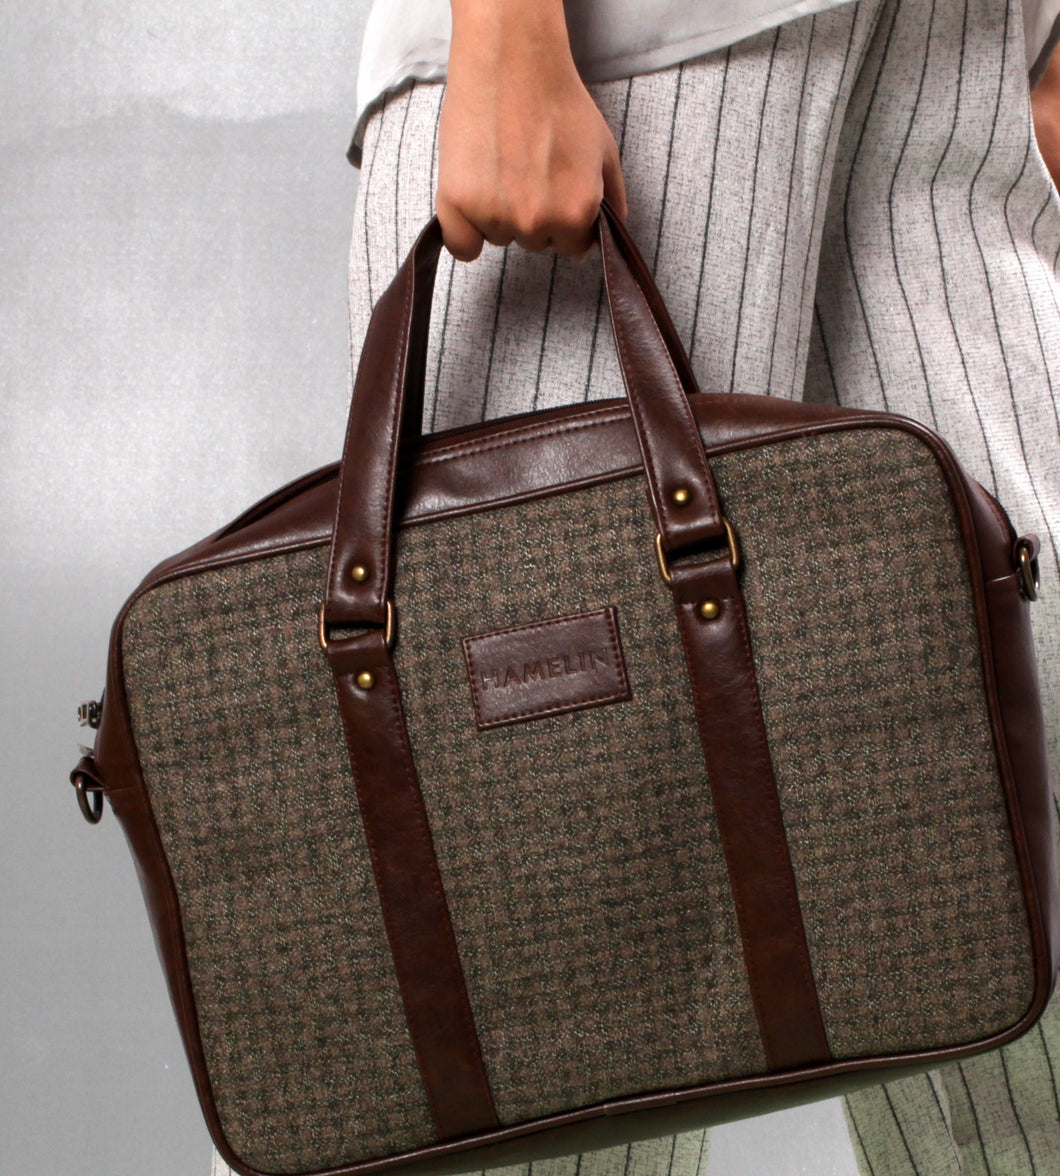 buy laptop bag online india